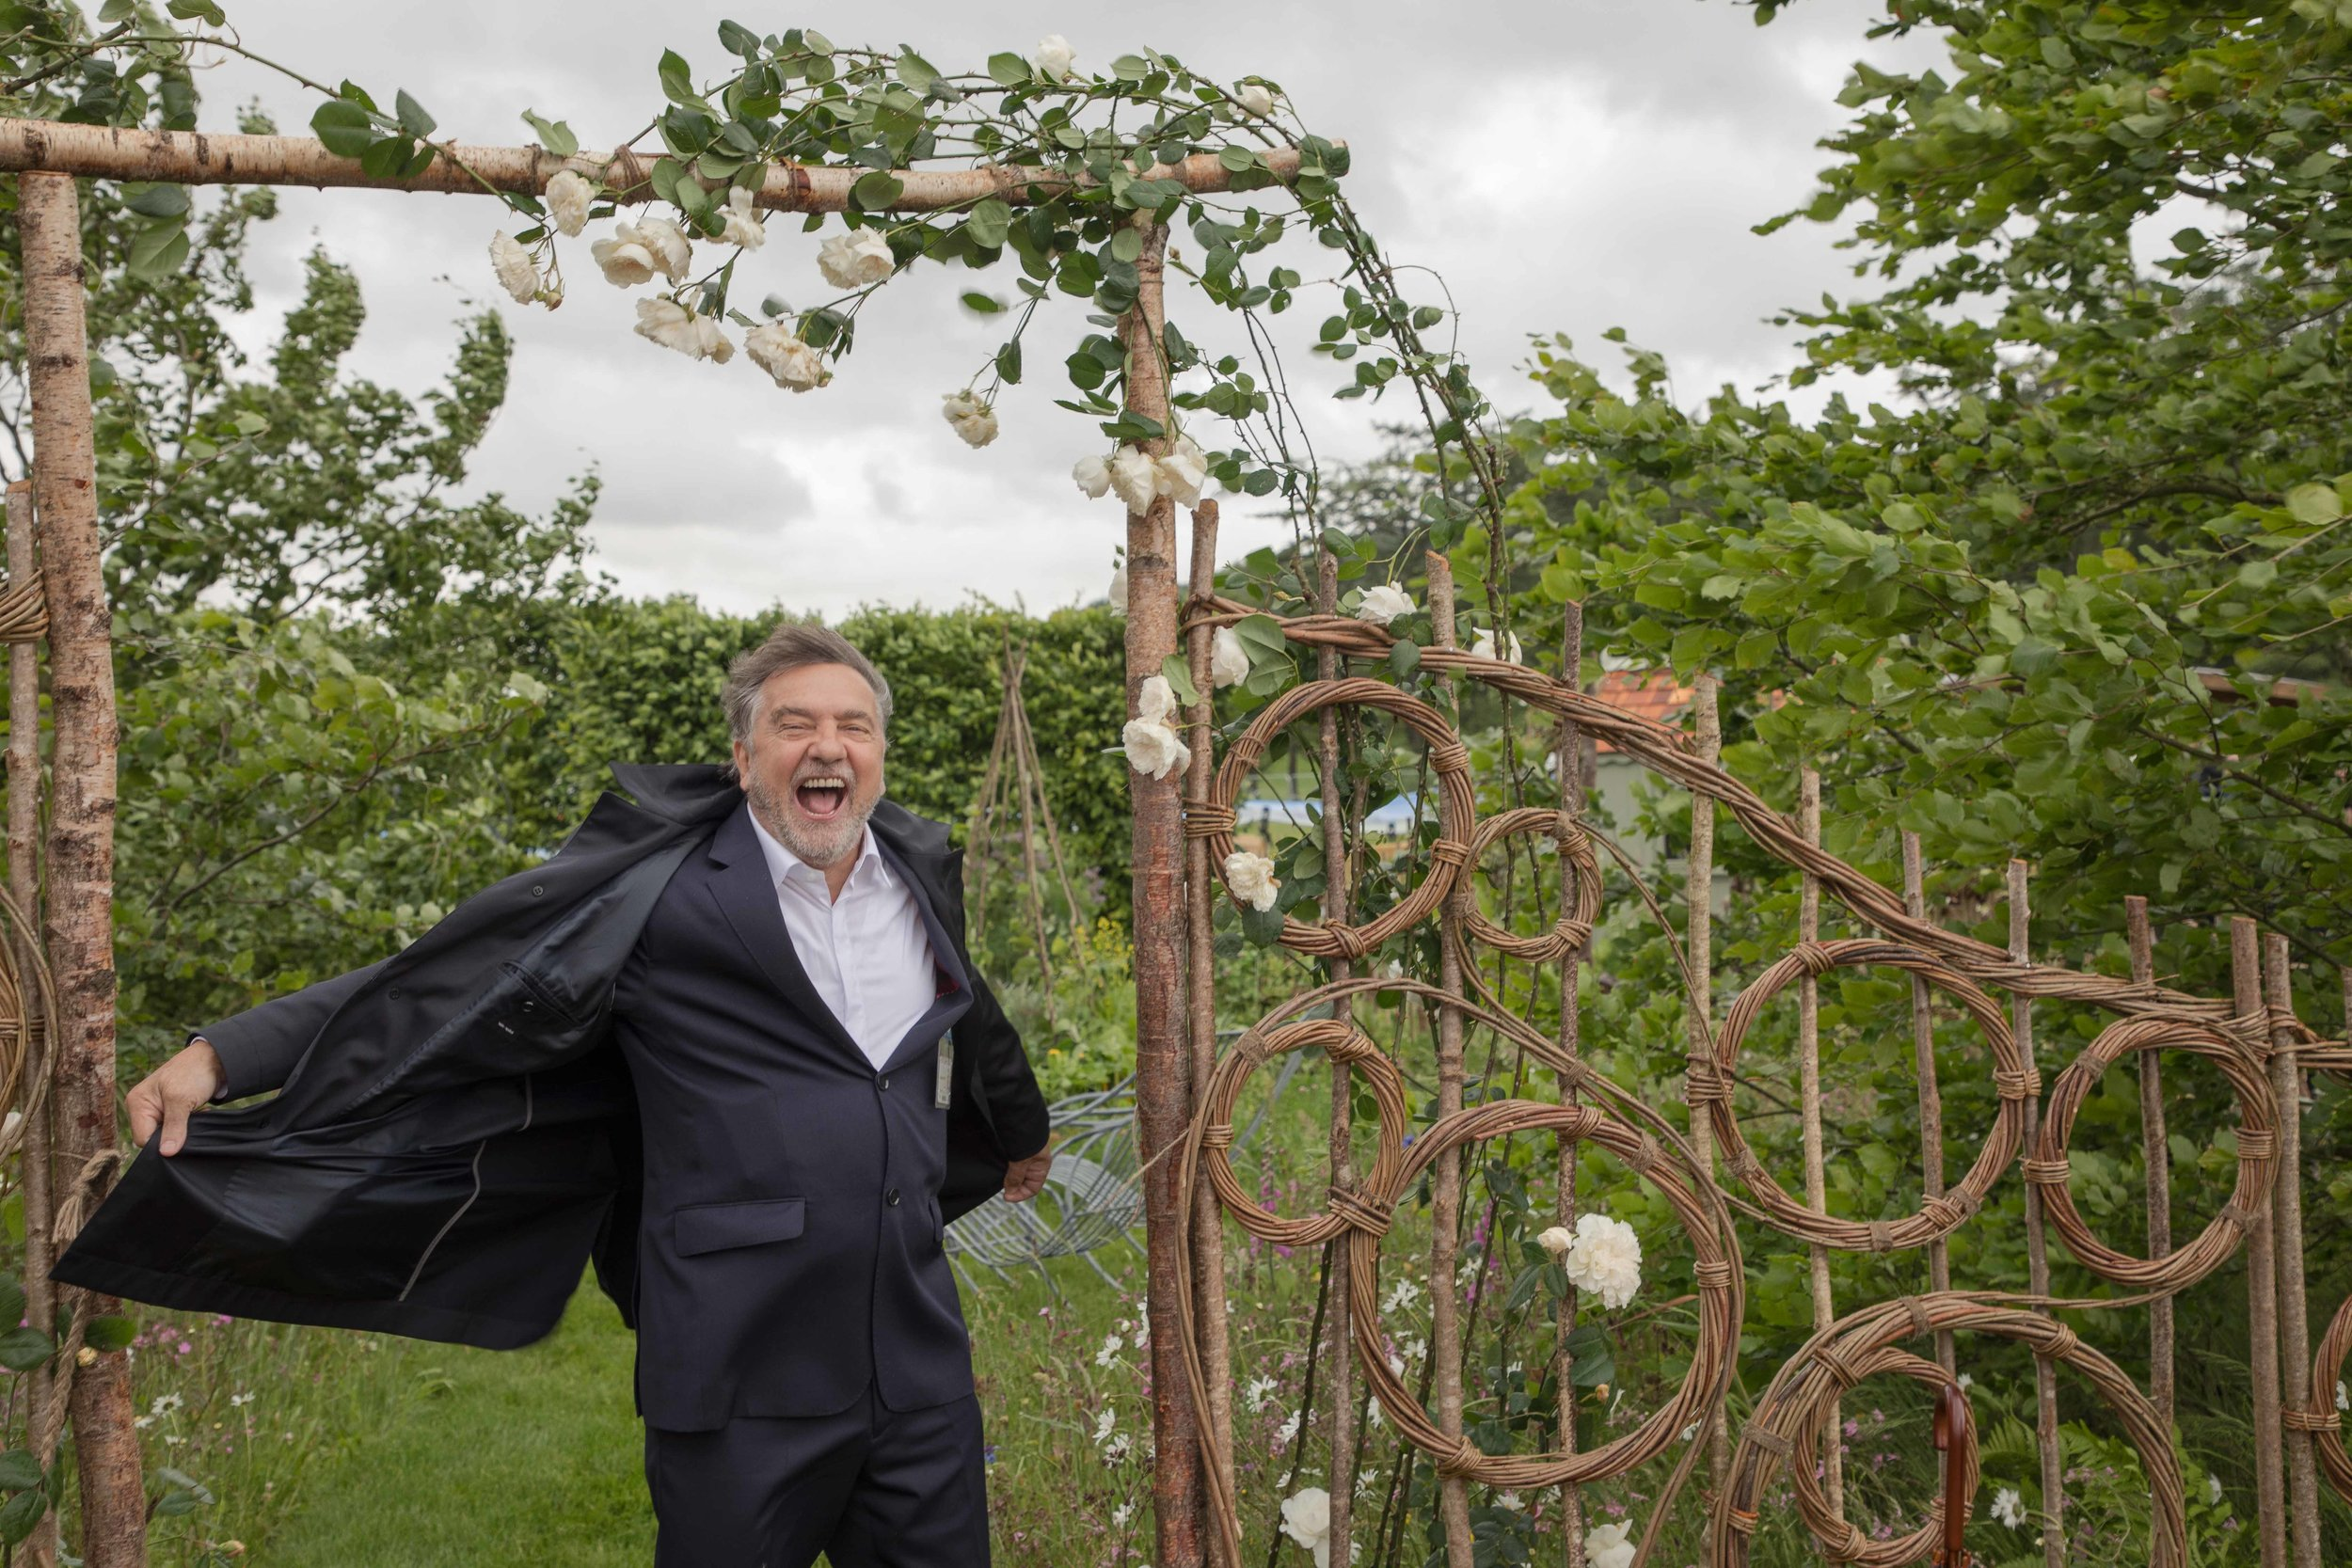 Raymond Blanc pictured here in the Belmond Enchanted Gardens by designer Butter Wakefield